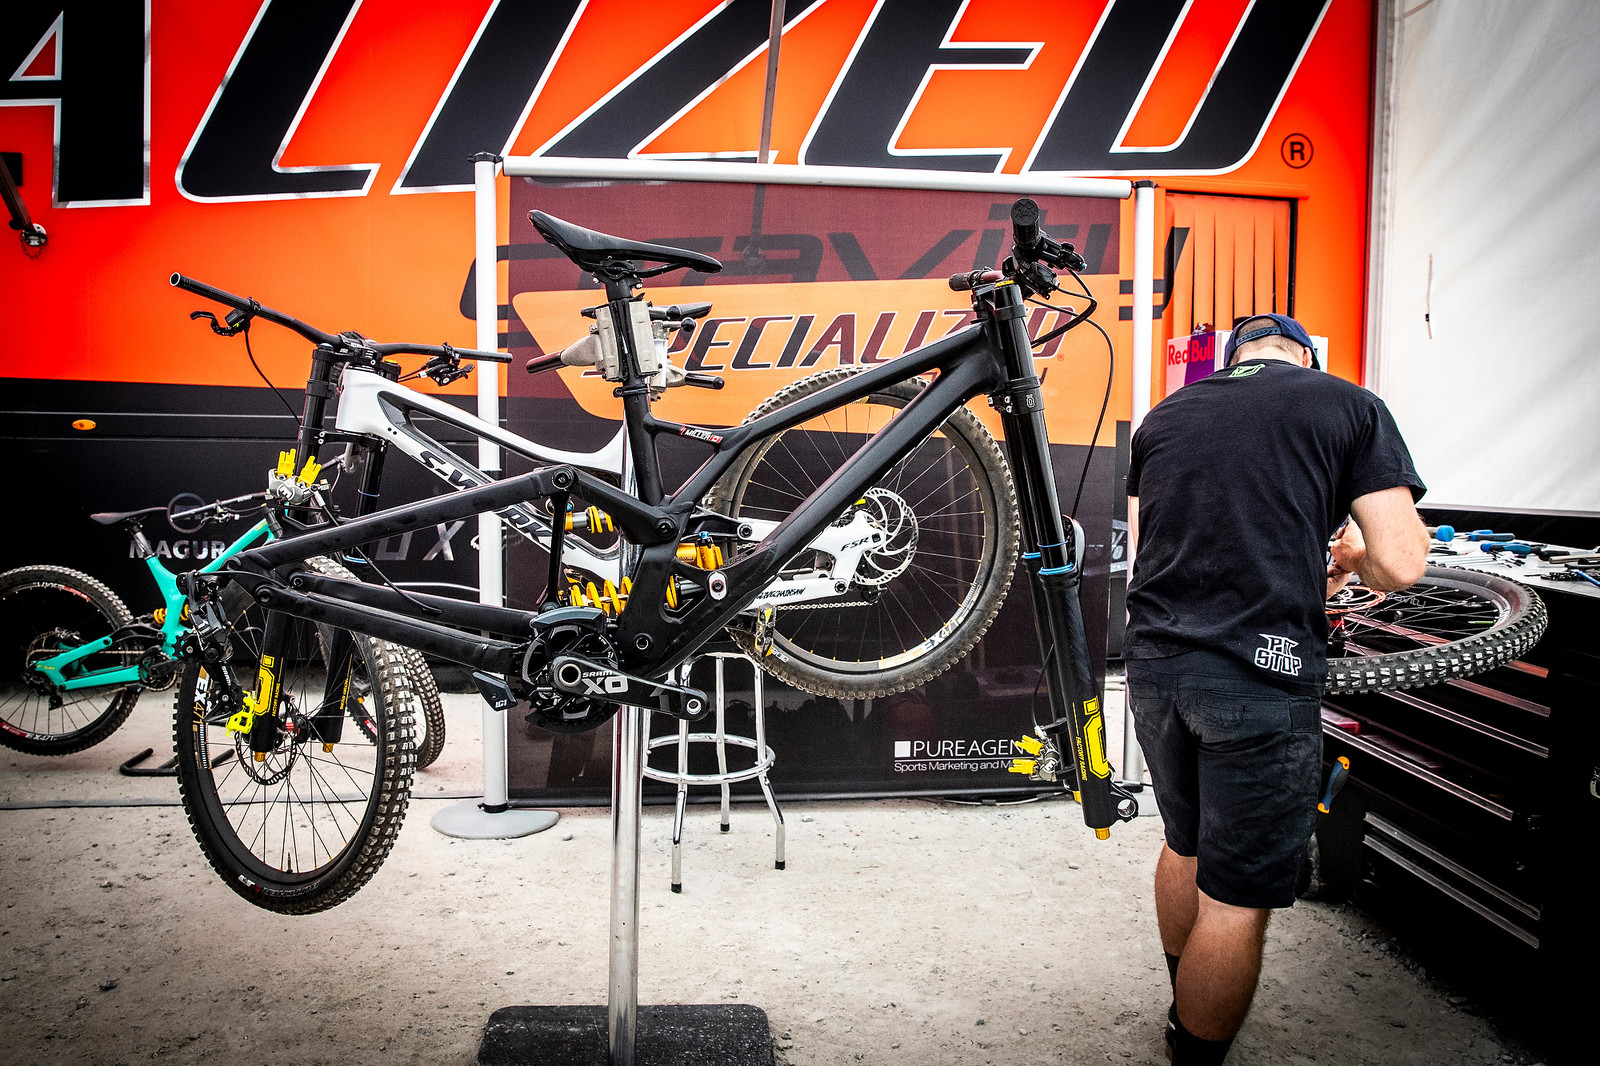 PROTOTYPE SPECIALIZED DEMO 29 FRAME - Prototype Specialized Demo 29 at Fort William - Mountain Biking Pictures - Vital MTB